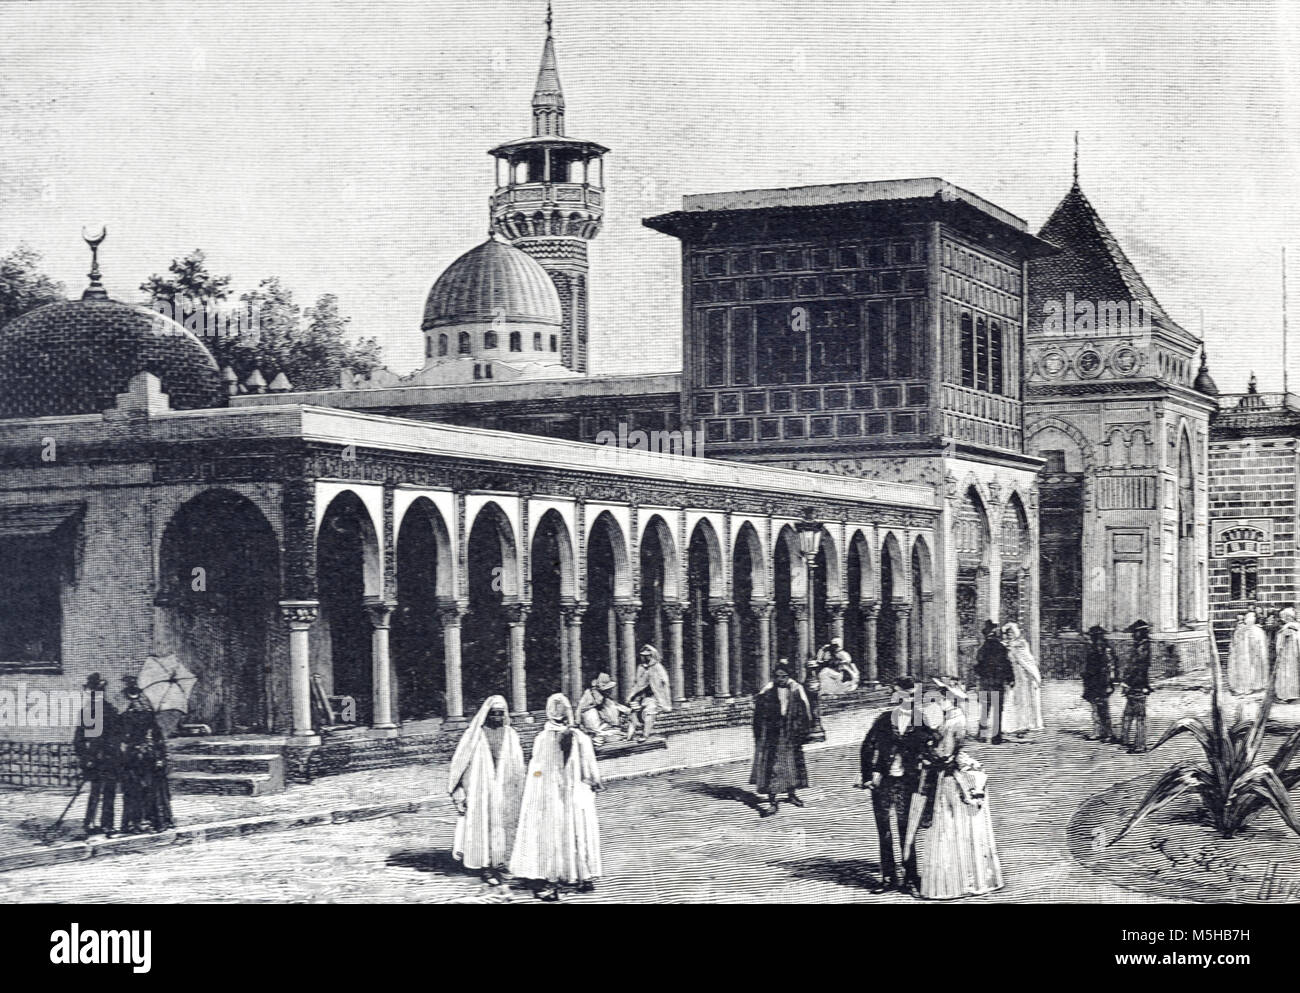 Algerian and Tunisian Pavilions at the Universal Exposition, Exposition Universelle or World Fair in Paris (1889) - Stock Image